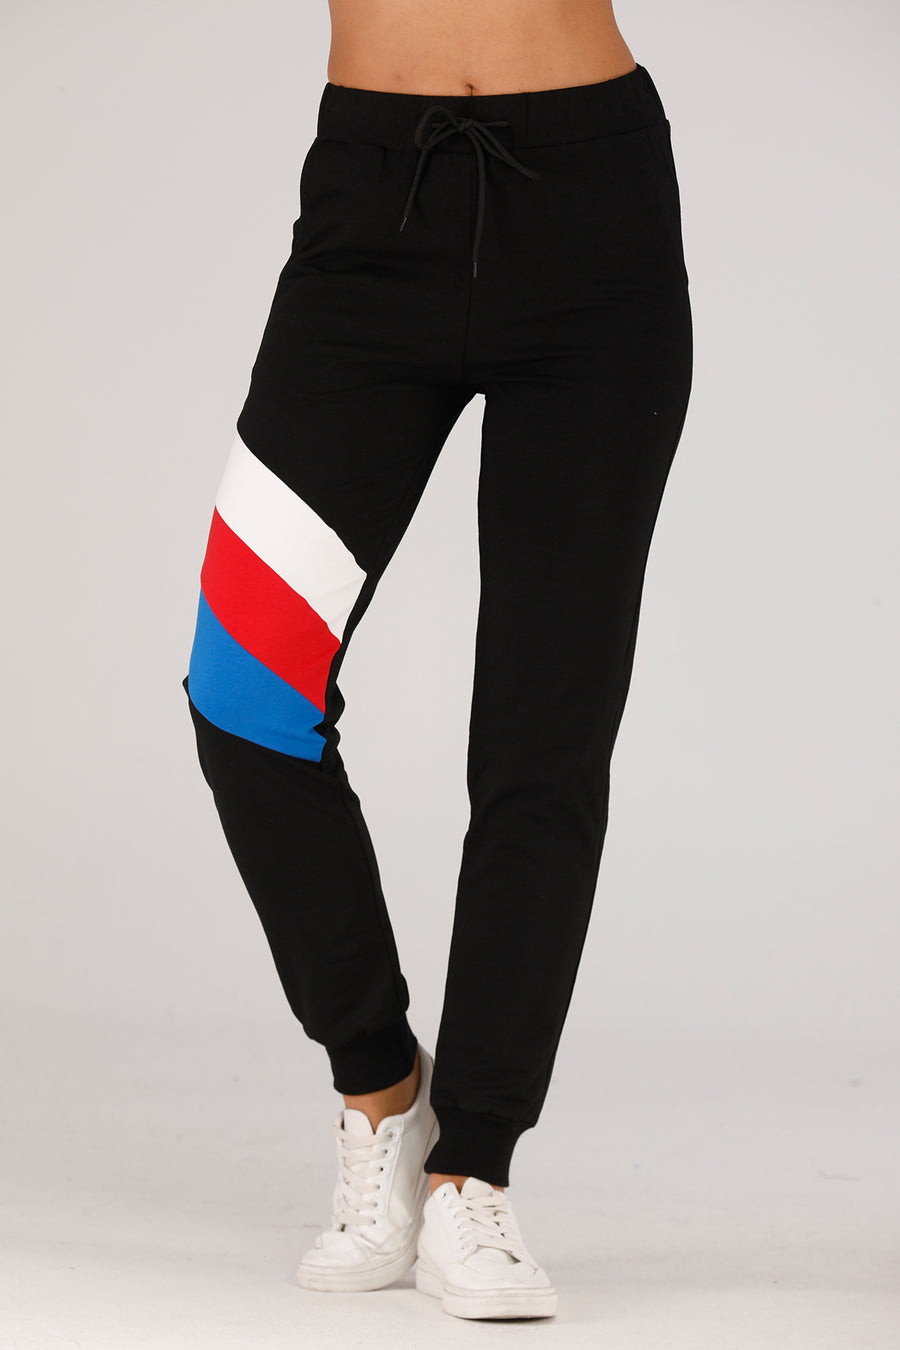 Mantra Pakistan Black Sweatpants With Color Stripes | BOTTOMS